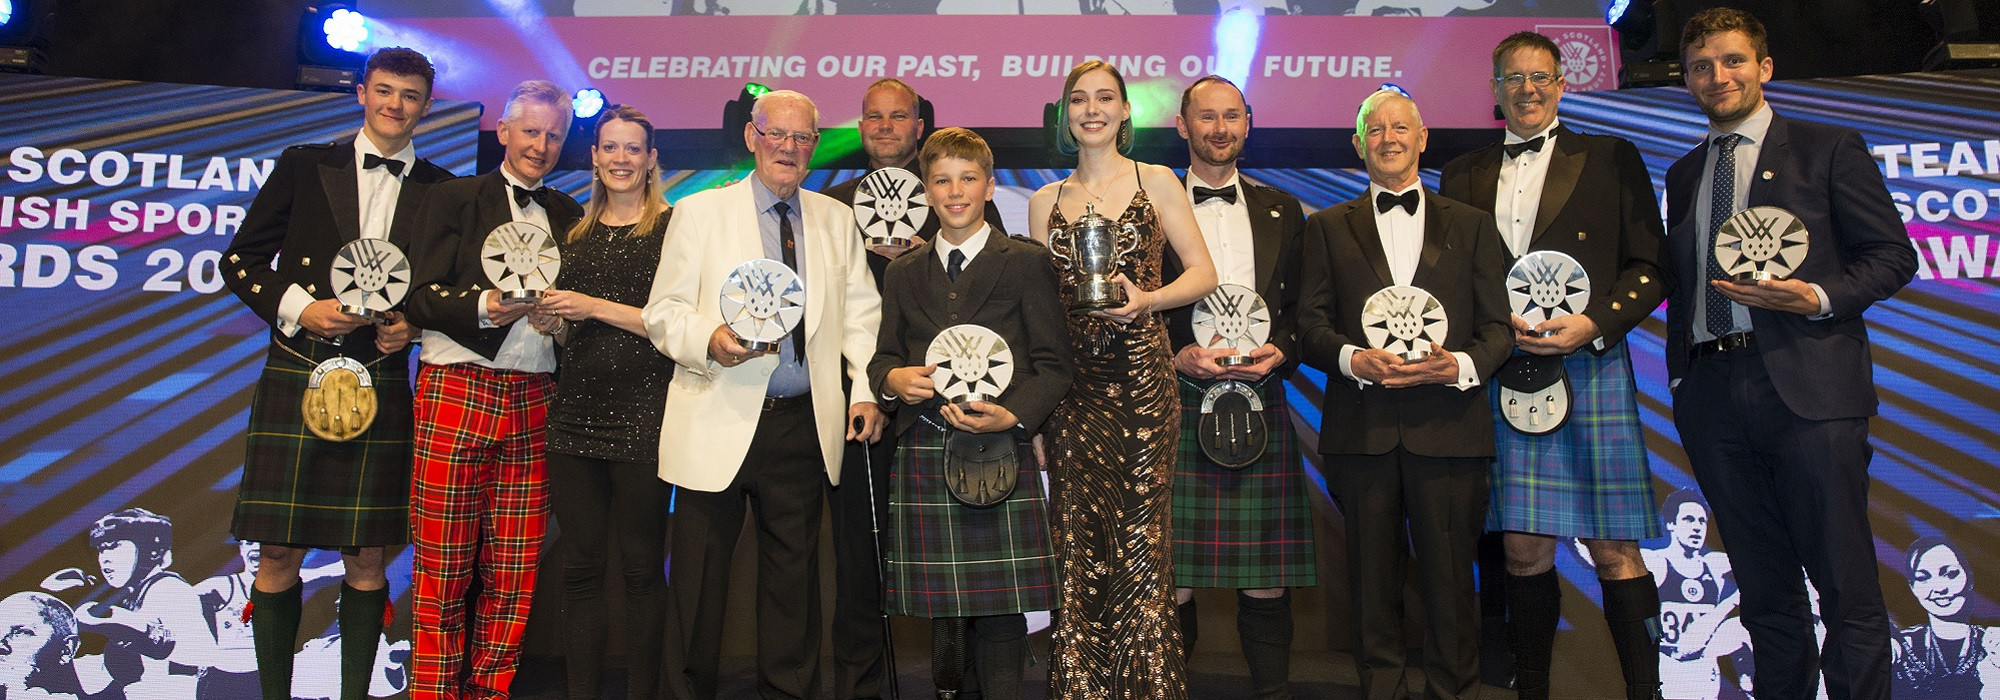 A number of prizes were handed out at the Team Scotland Scottish Sports Awards ©Team Scotland